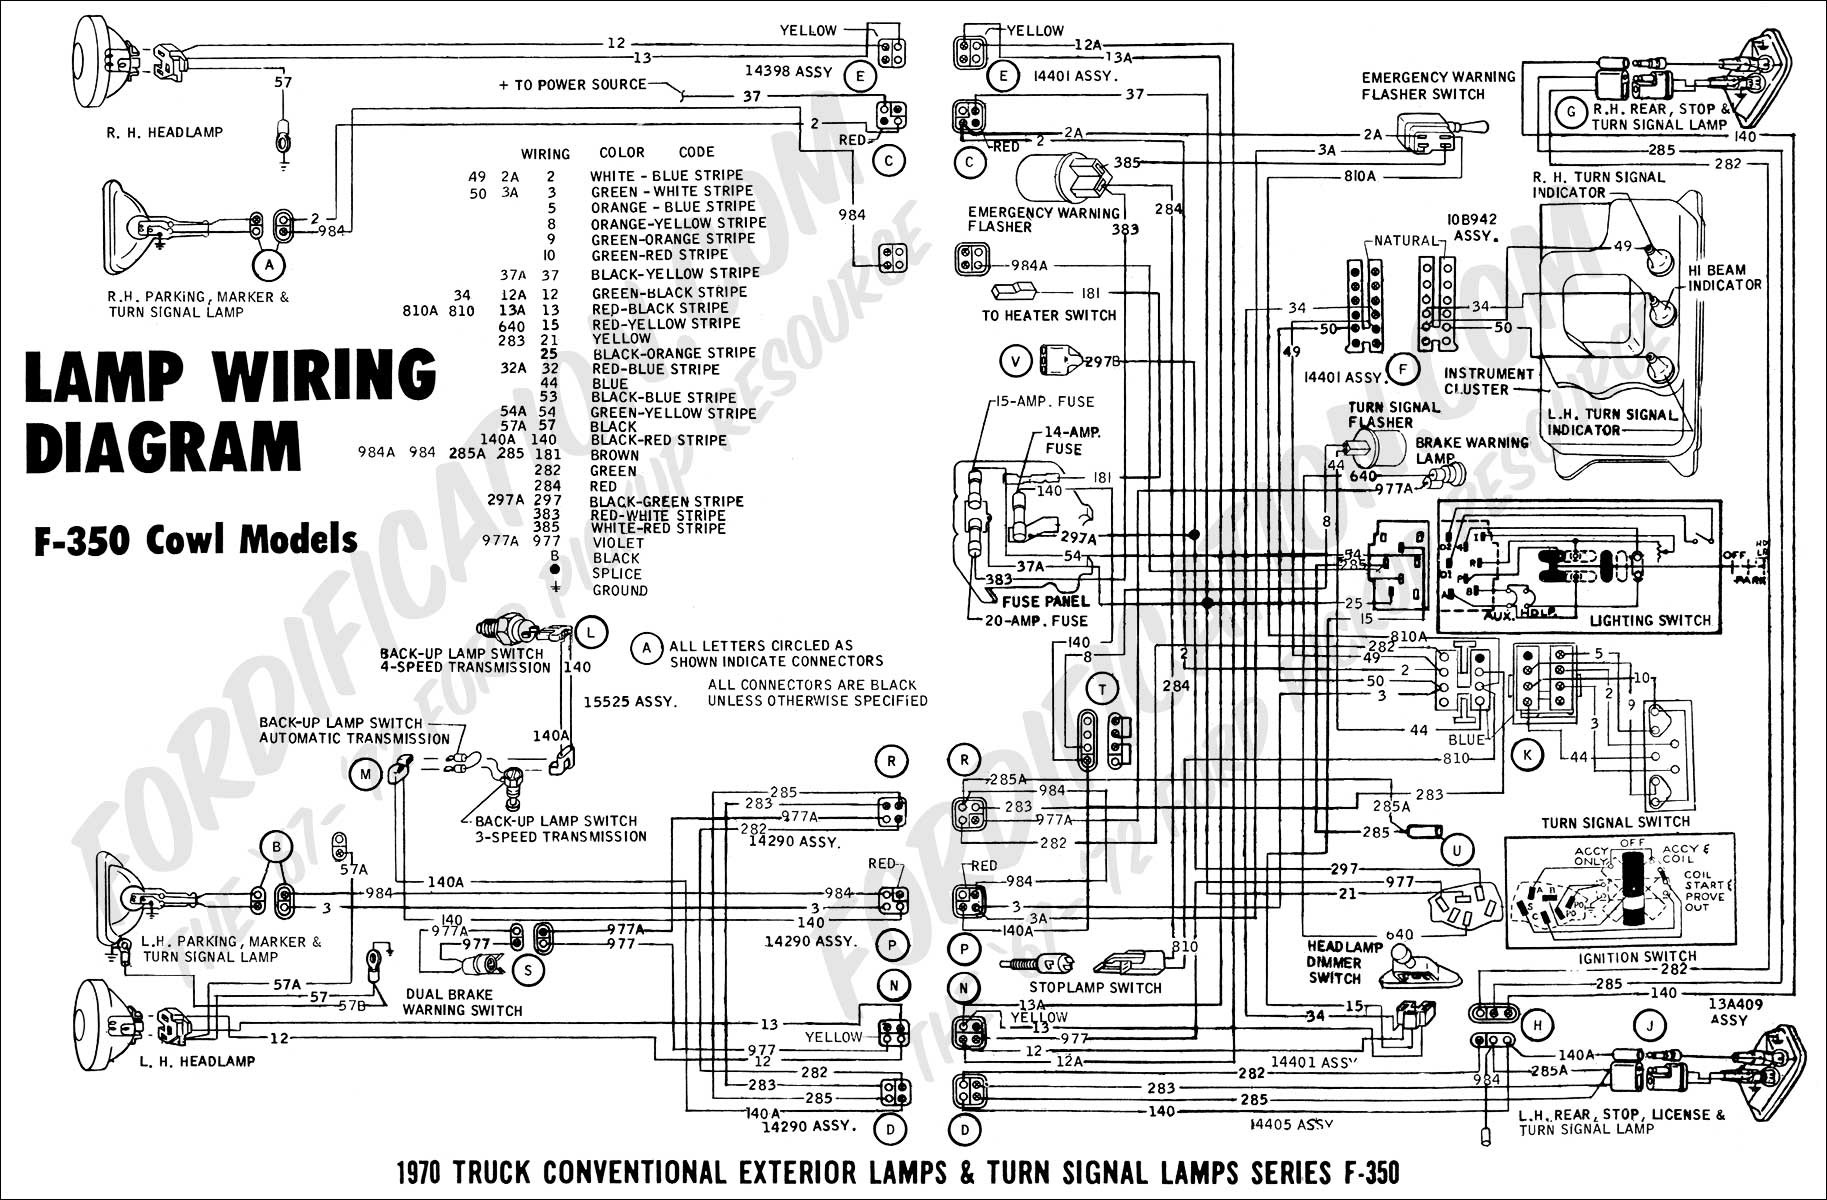 2001 Ford Explorer Sport Engine Diagram F750 Wiring Headlamp To Her With 99 F 350